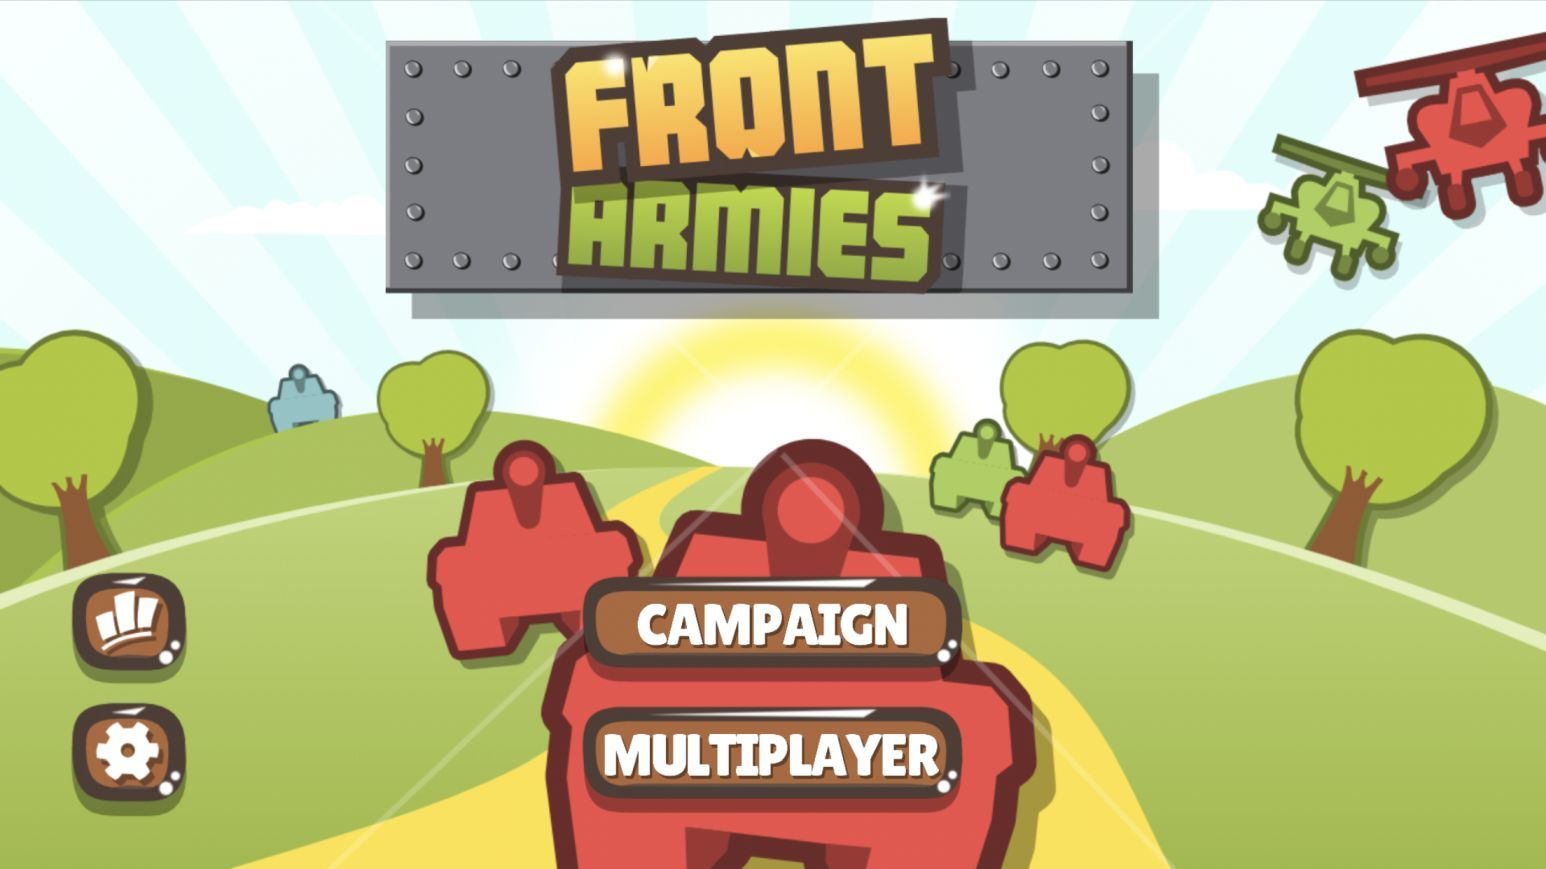 Front Armies [RTS] (copie d'écran 1 sur iPhone / iPad)